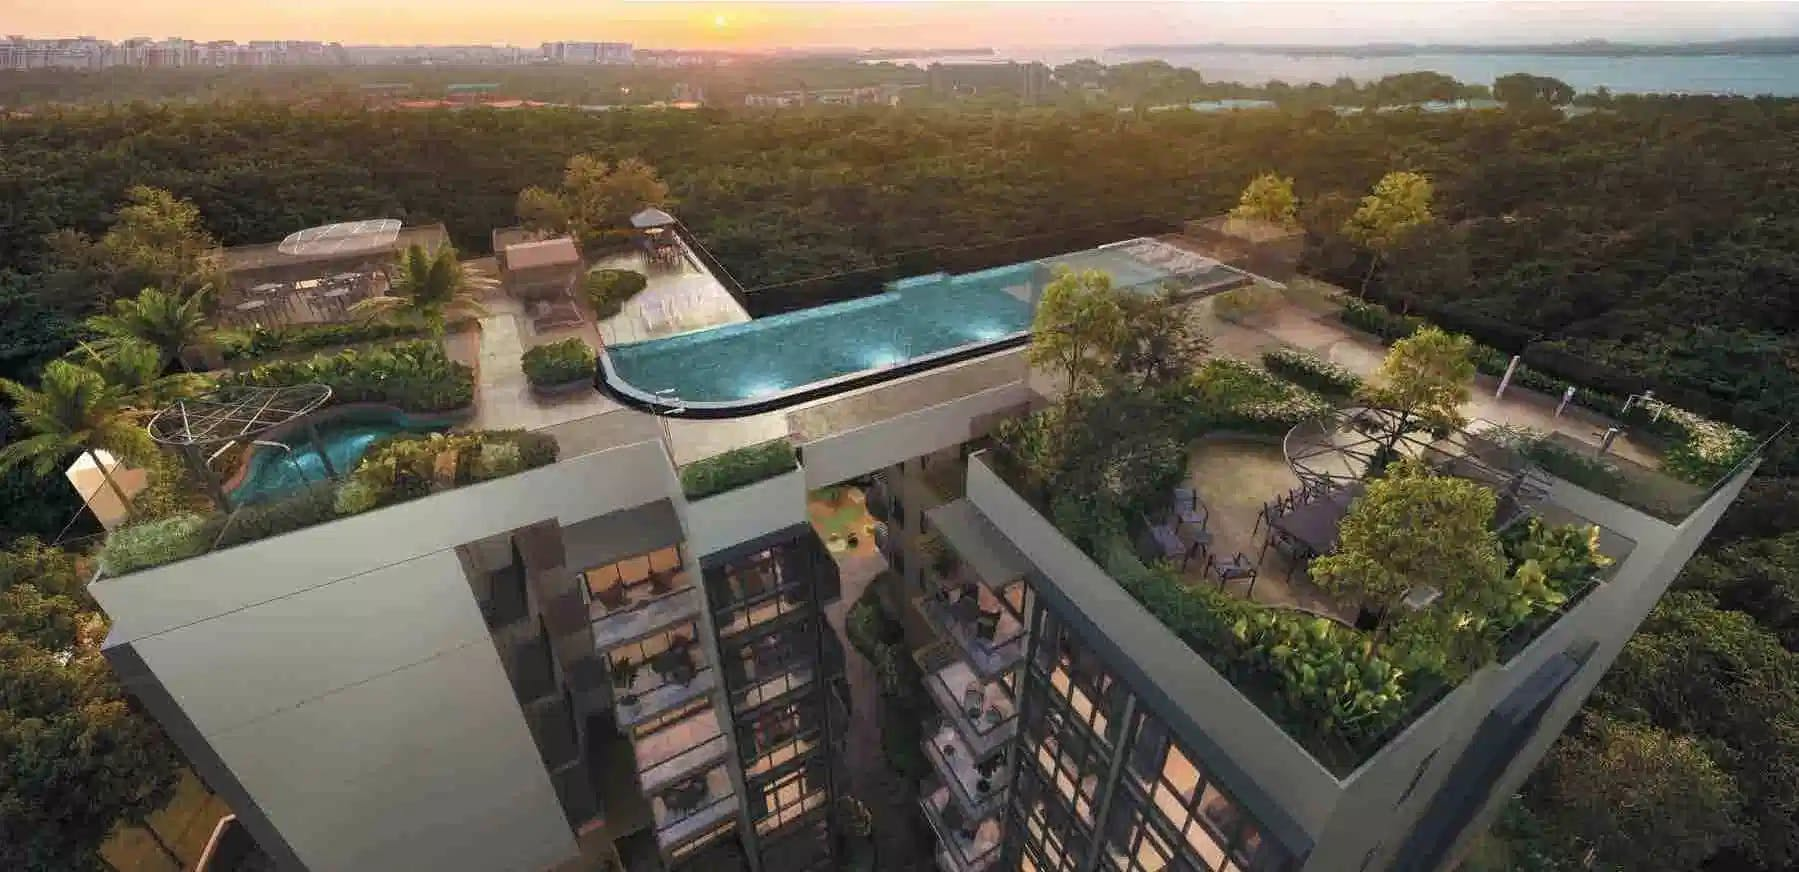 Casa Al Mare in the day, is almost on the cusp of Pasir Ris Beach and Pasir Ris Park.